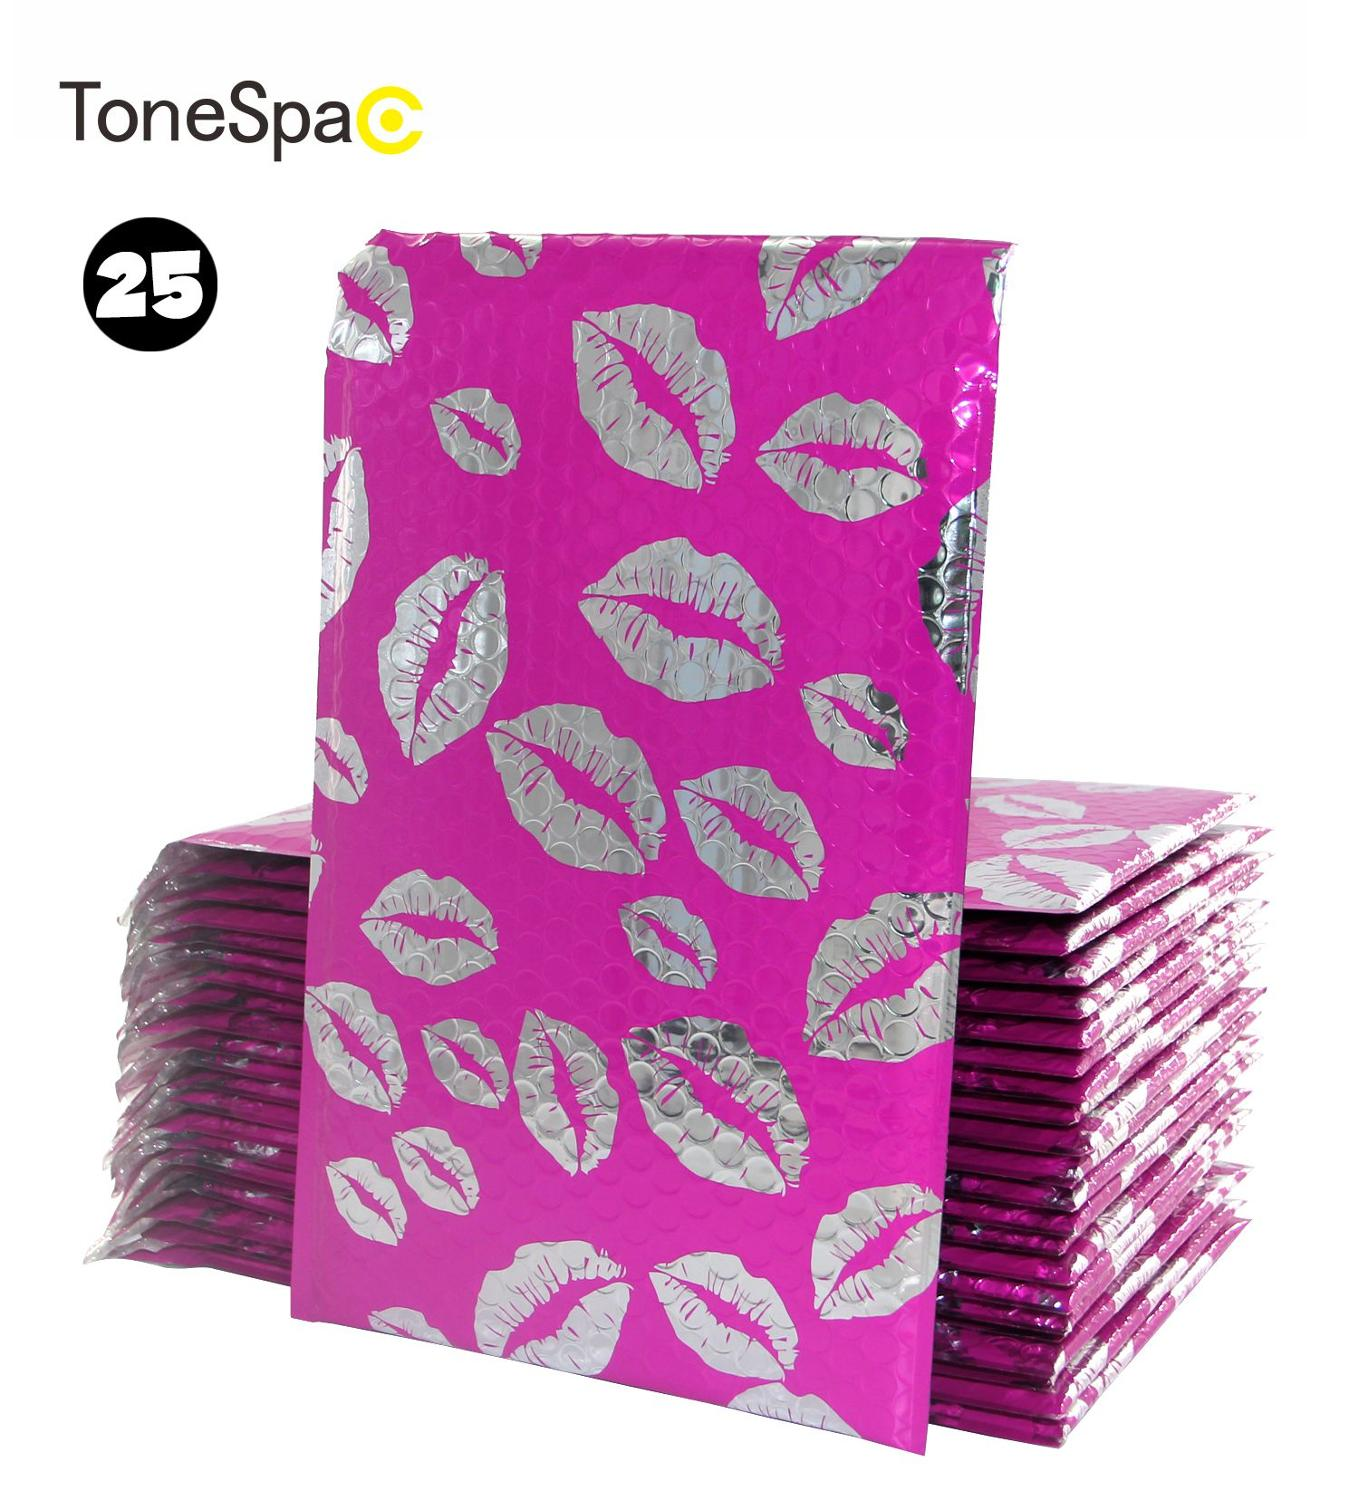 TONESPAC 190*260mm 25pcs Lips Kiss Poly Bubble Mailer Padded Shipping Envelopes Bag Self Seal Waterproof Packaging Hot Pink